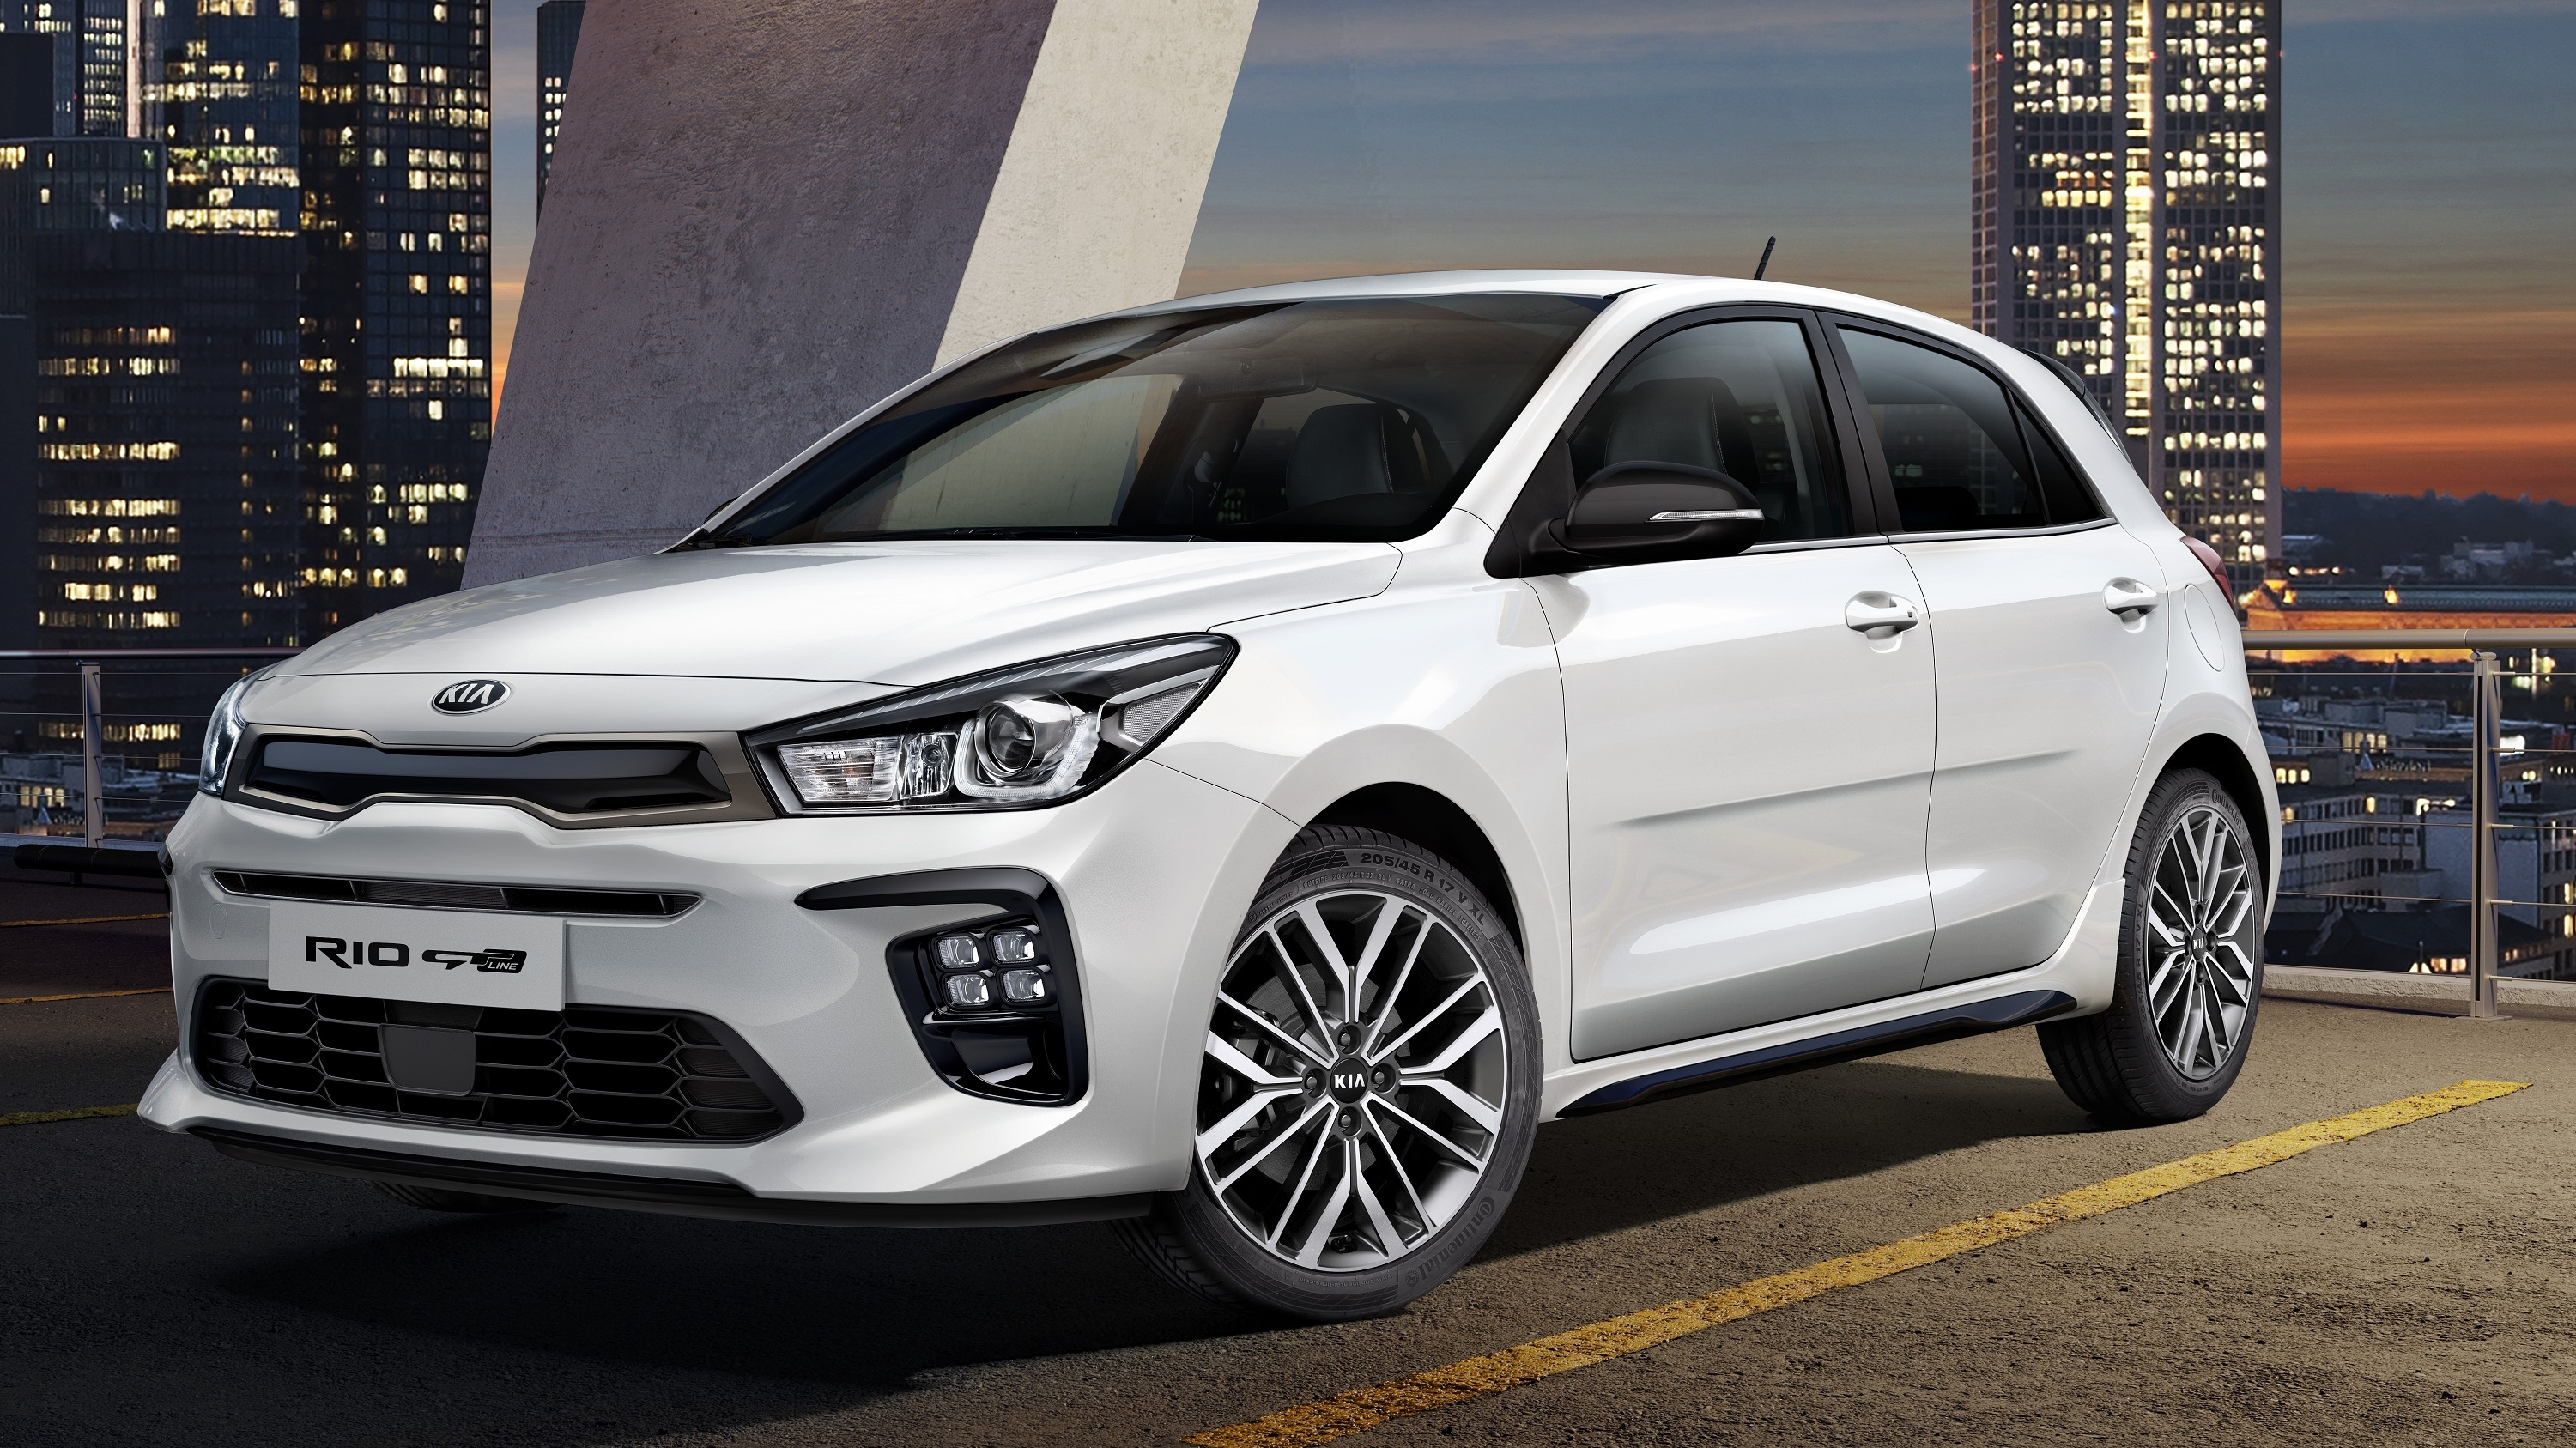 2018 kia rio gt line review gallery top speed. Black Bedroom Furniture Sets. Home Design Ideas